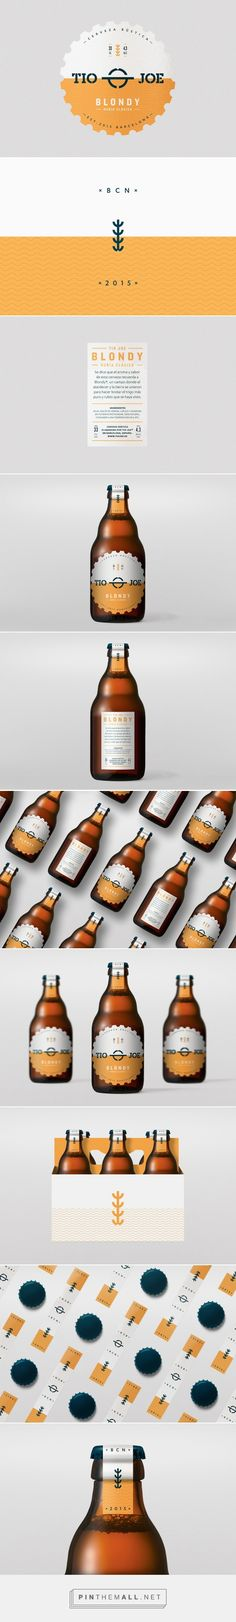 Blondy Beer packaging design by Diferente (Spain) - http://www.packagingoftheworld.com/2016/04/blondy.html